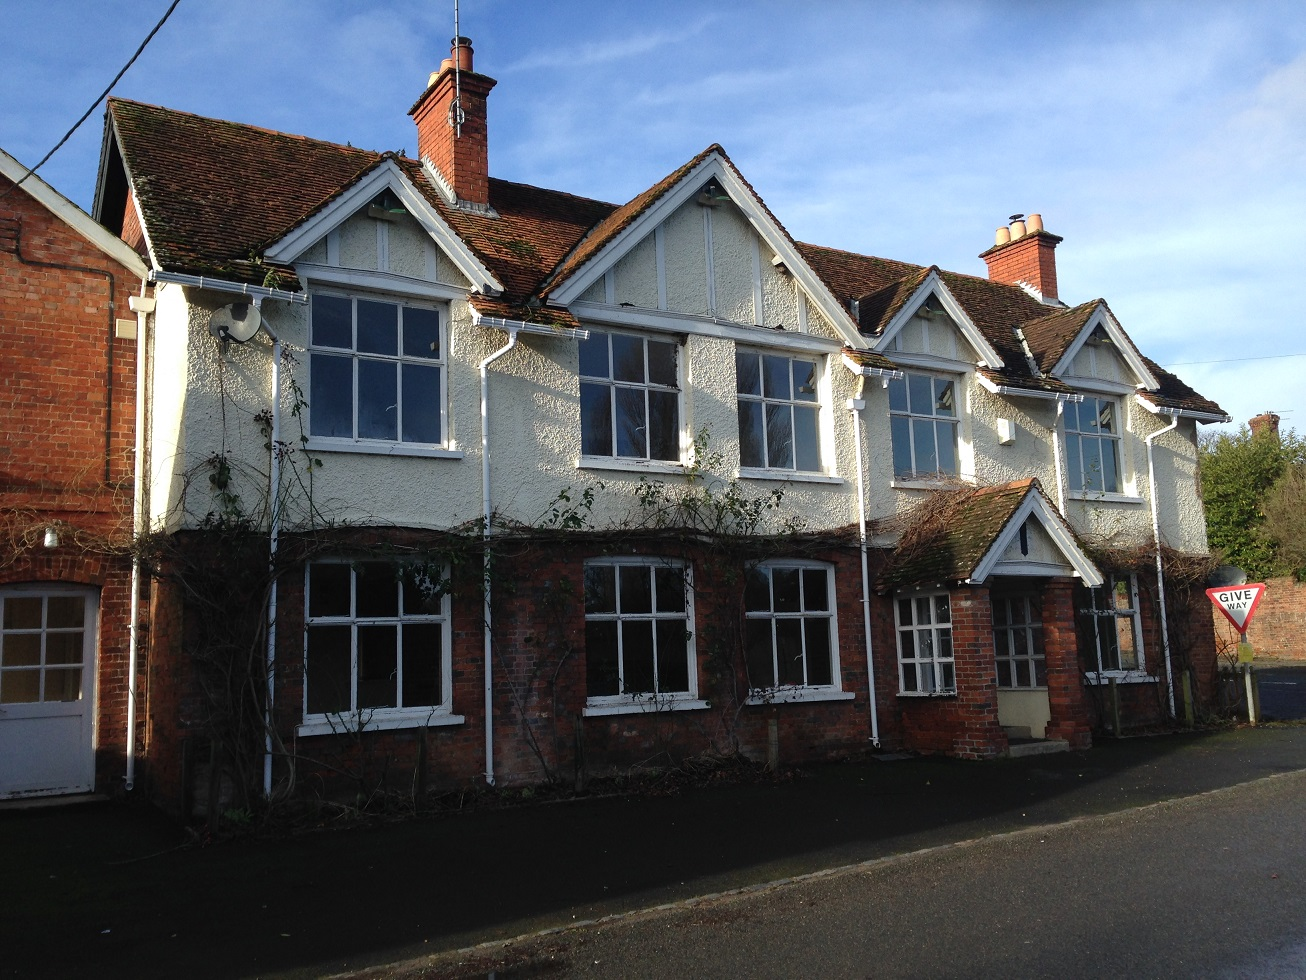 The Hurstbourne Inn, Hurstbourne Priors, Hampshire